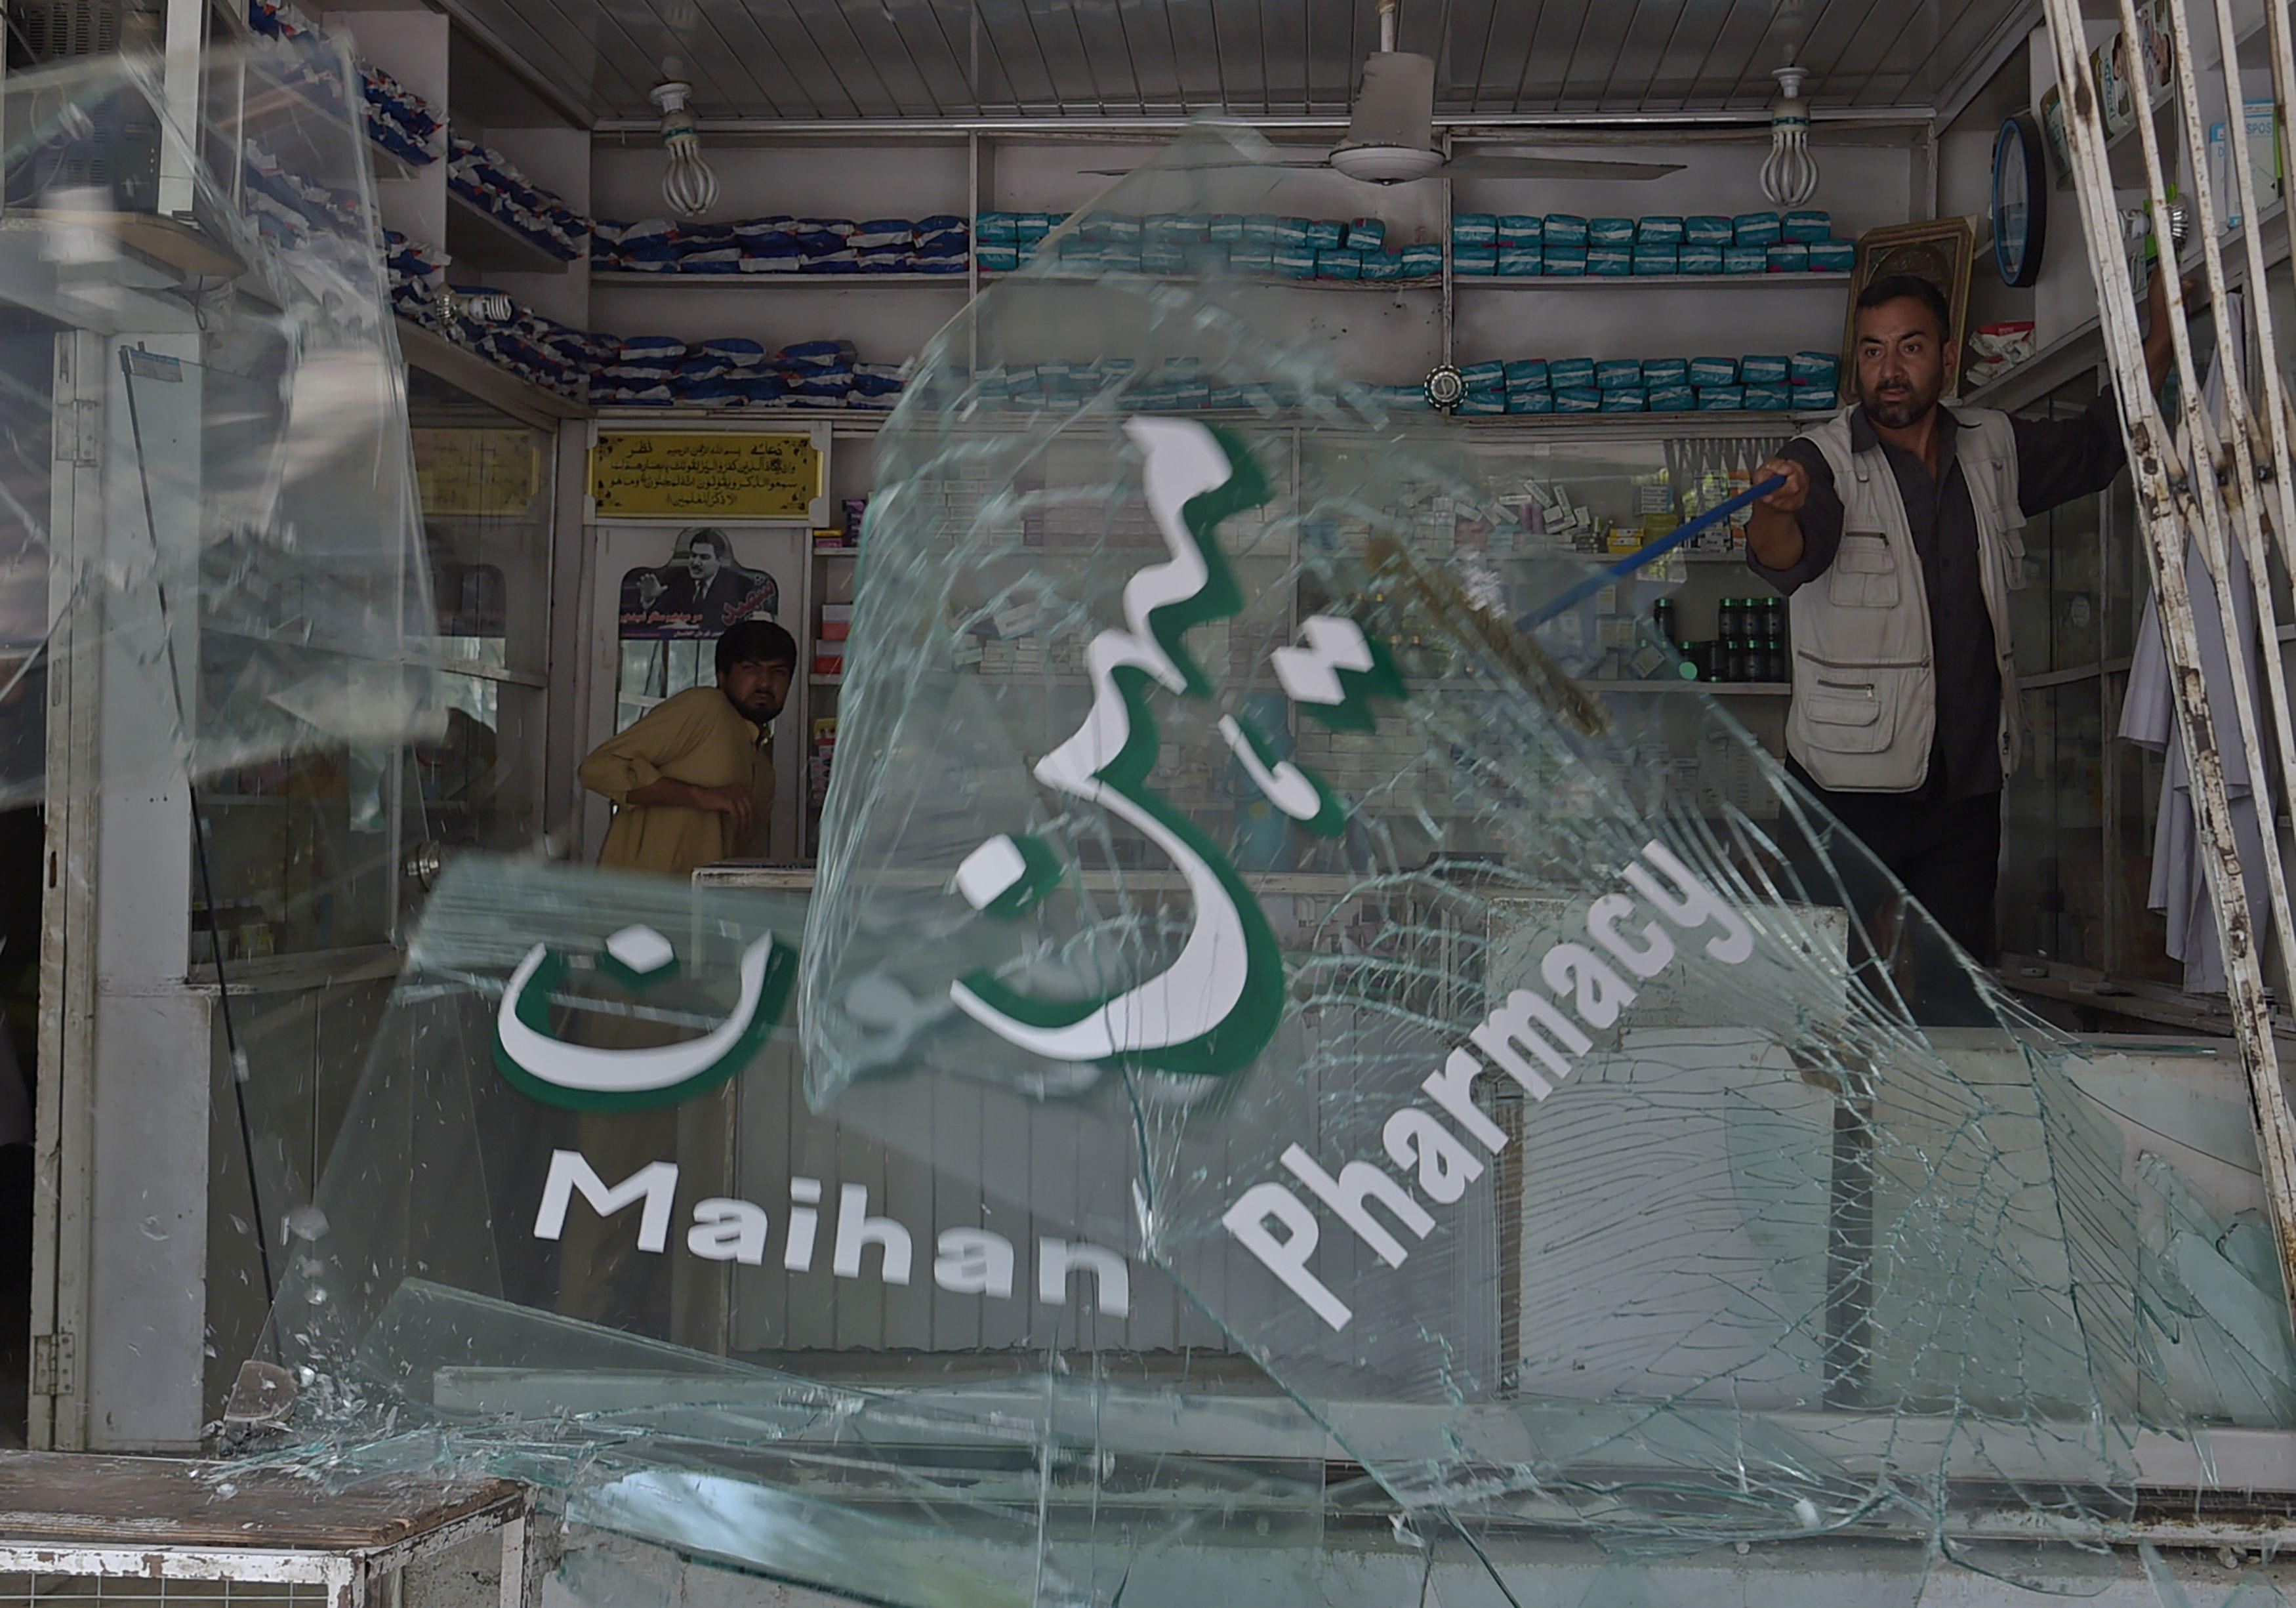 <p>Afghan shopkeepers clean up broken glass at the site of a suicide attack outside a bank near the U.S. embassy in Kabul on Aug. 29, 2017. A suicide bomber blew himself up on a busy shopping street near the US embassy in central Kabul on August 29, killing four people and injuring several others, officials said. It was the latest in a series of deadly attacks to hit the Afghan capital, and comes three months after a massive truck bomb ripped through the same area, killing about 150 people. (Photo: Shah Marai/AFP/Getty Images) </p>